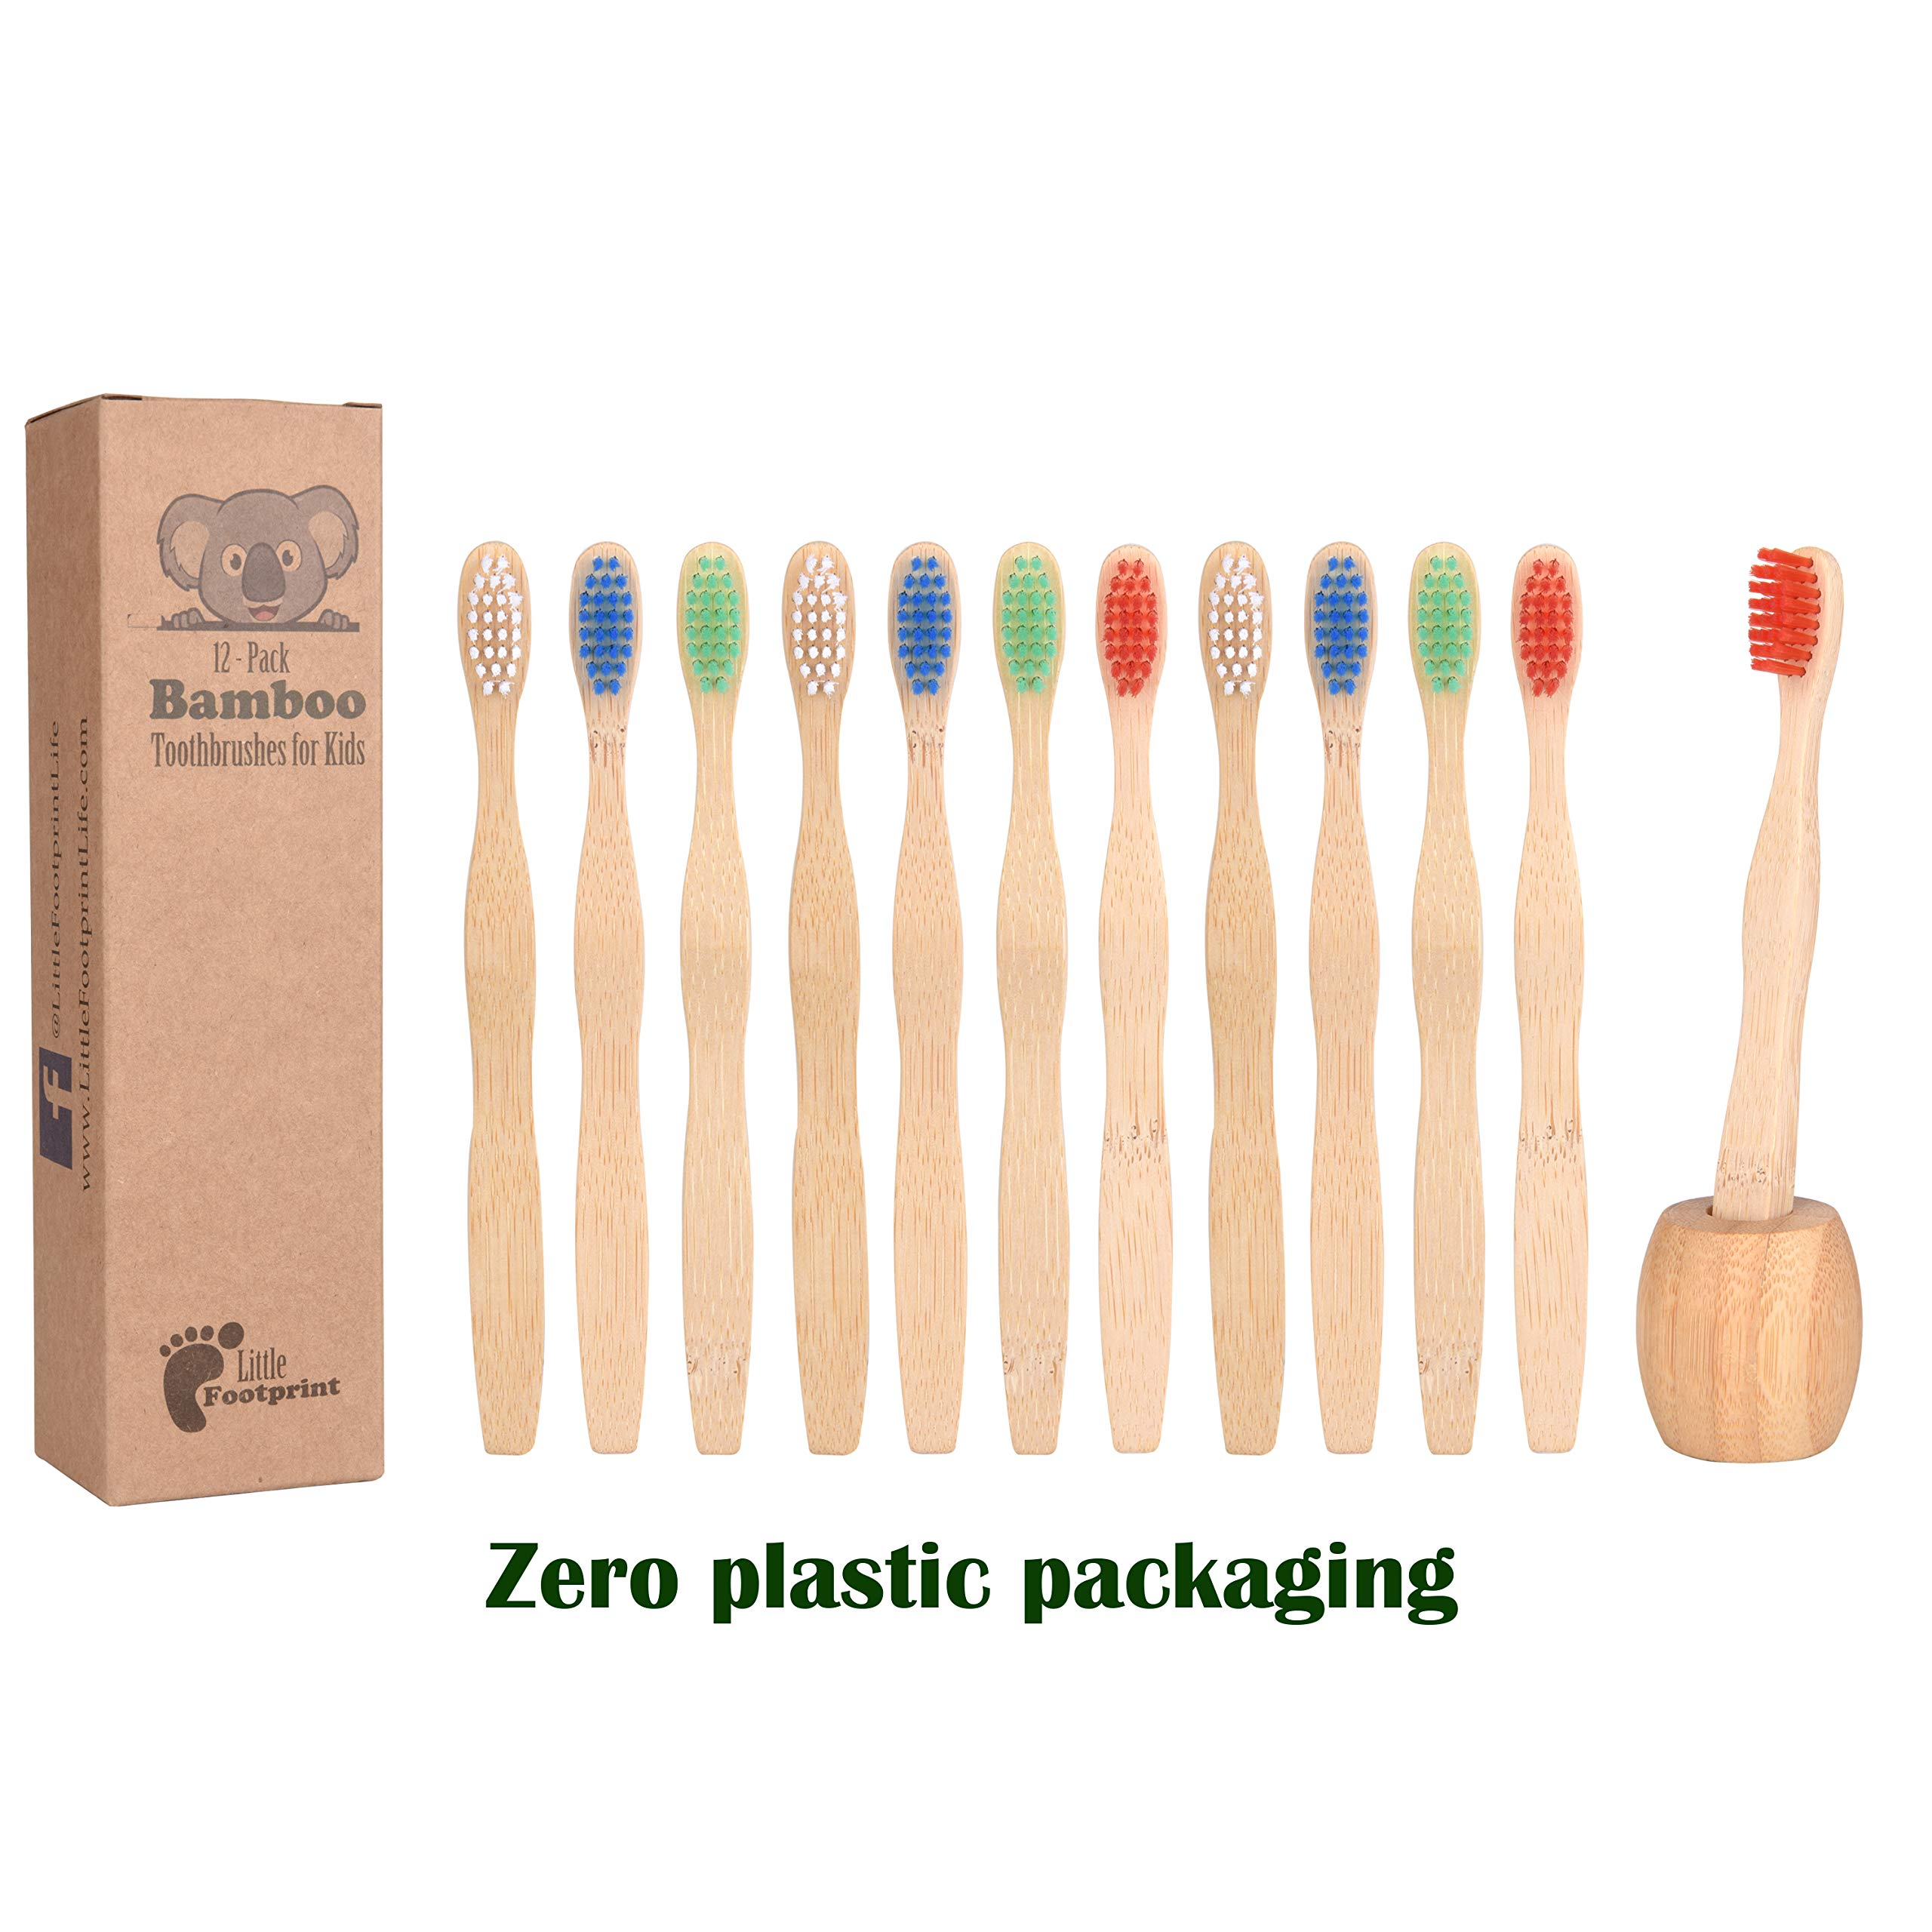 Bamboo Toothbrush for Kids   12 Pack toothbrushes + Tooth Brush Holder   Biodegradable Compositable Natural Wood   Non Toxic Soft BPA Free Bristles   by Little Footprint